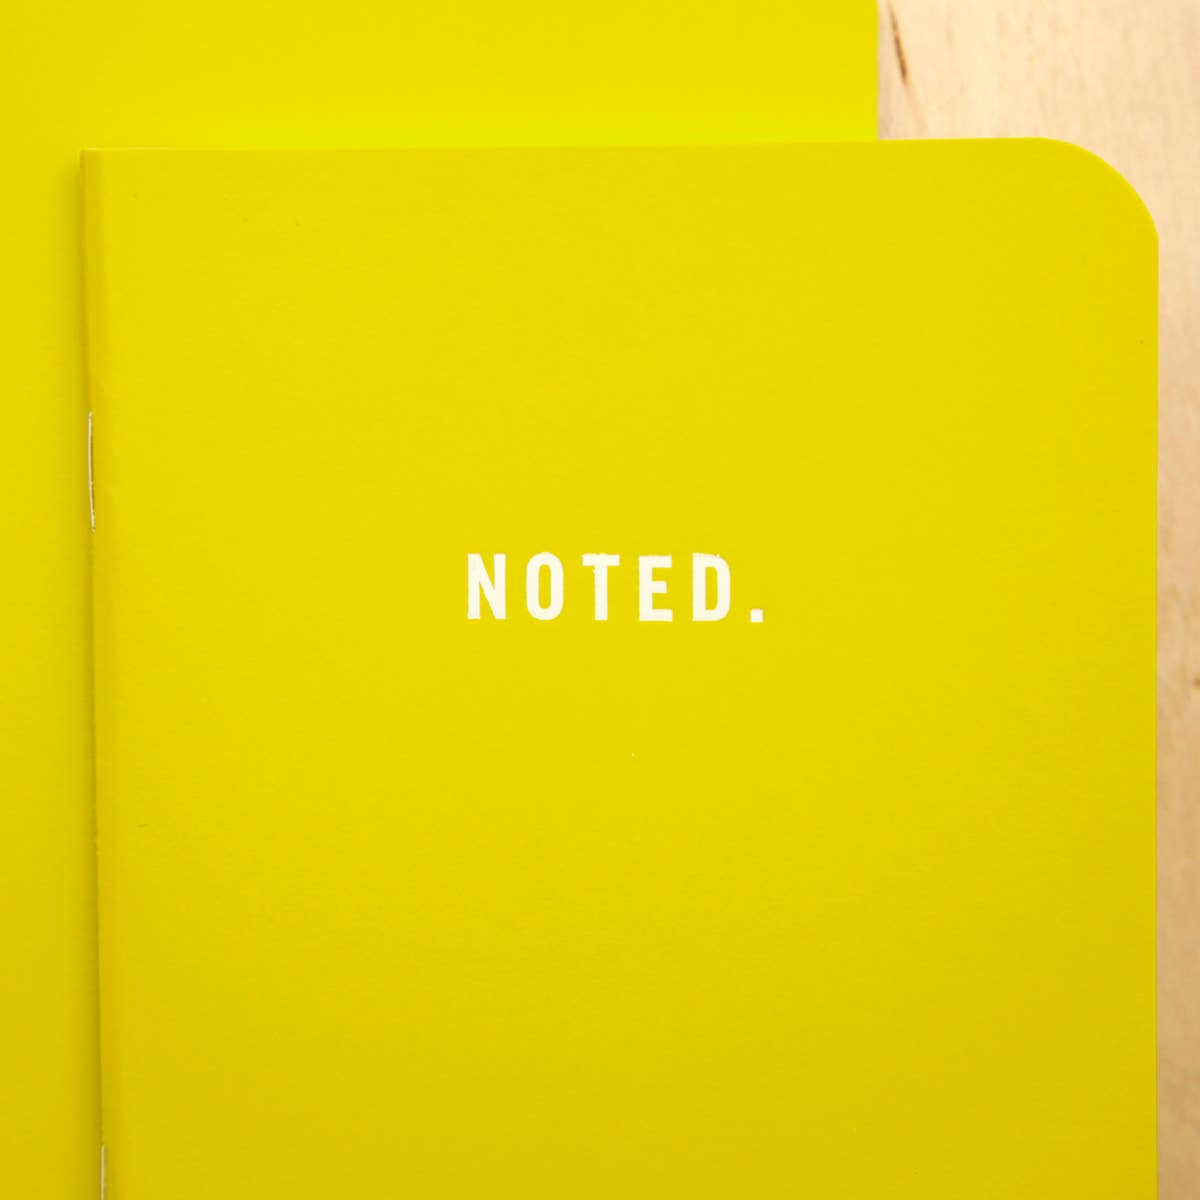 NOTED - Notebook - Femme Wares Niagara Local Small Business